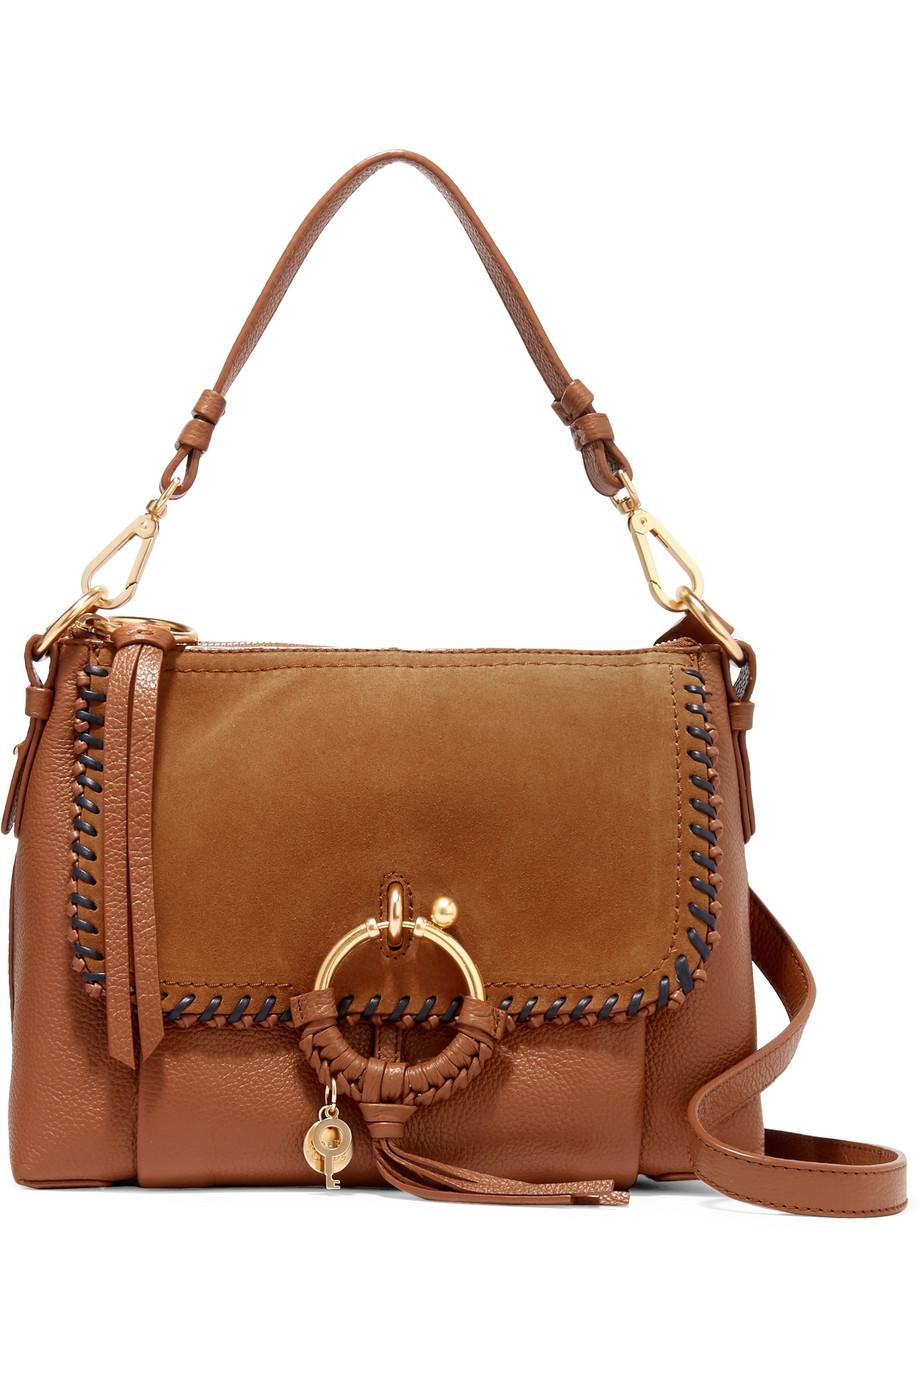 Joan Small Suede-paneled Textured-leather Shoulder Bag - Tan See By Chlo ZRCym